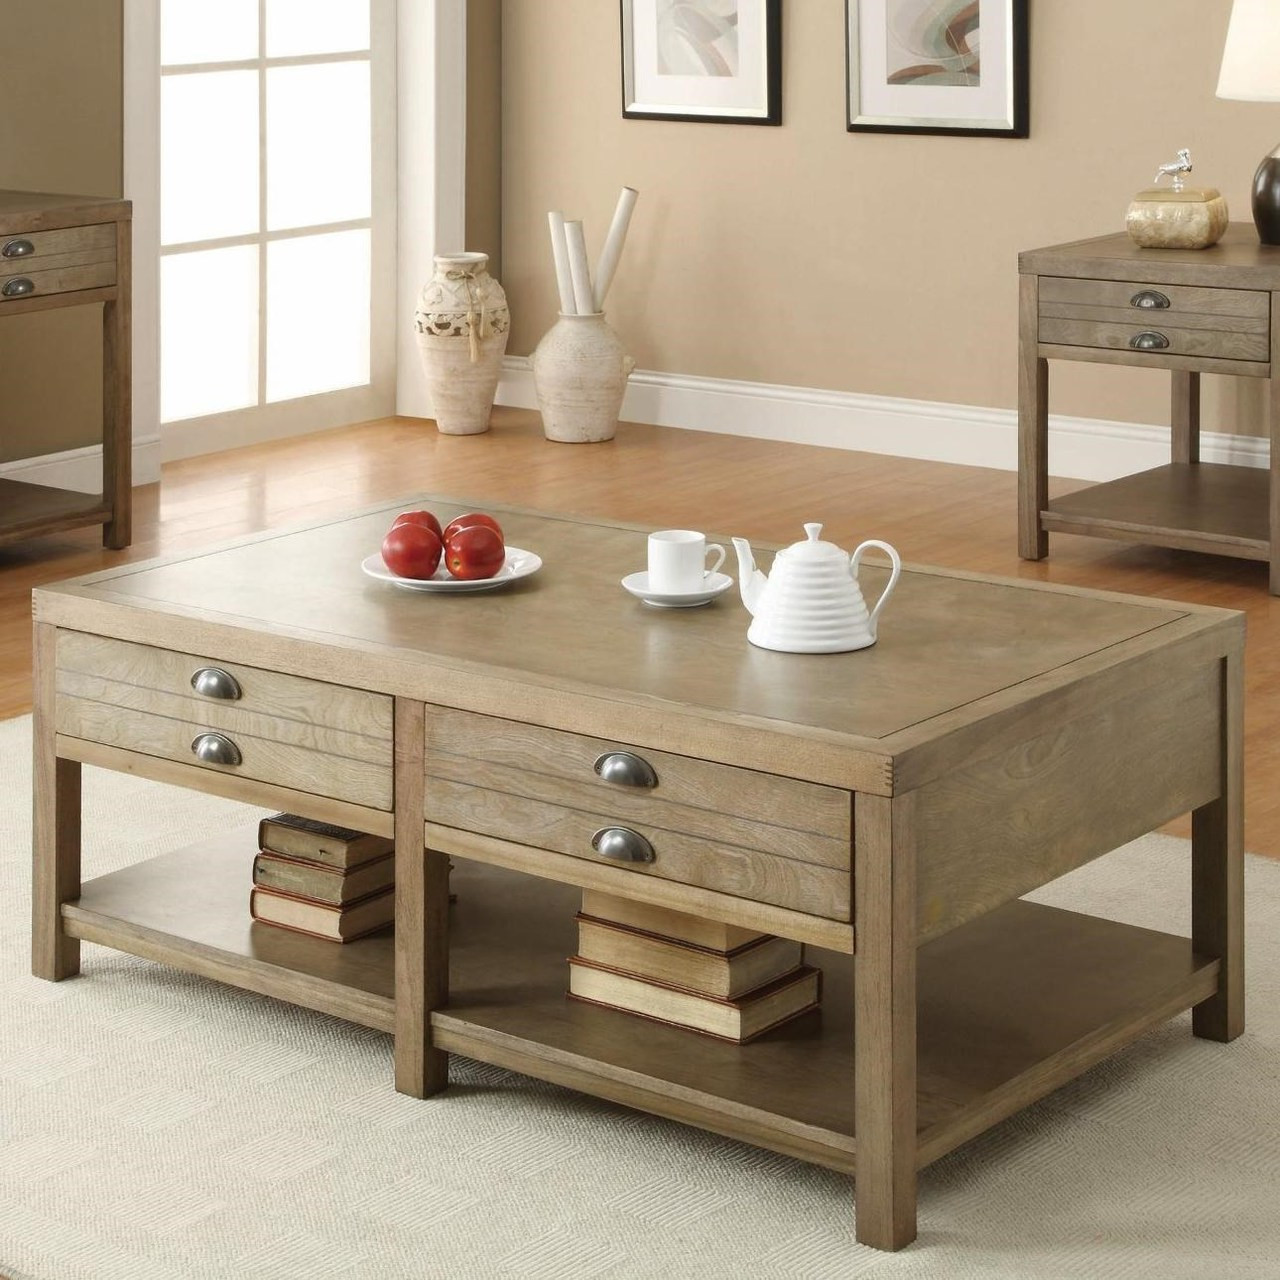 Driftwood Finish Coffee Table With Drawers | Elegant Coffee Table With  Drawers